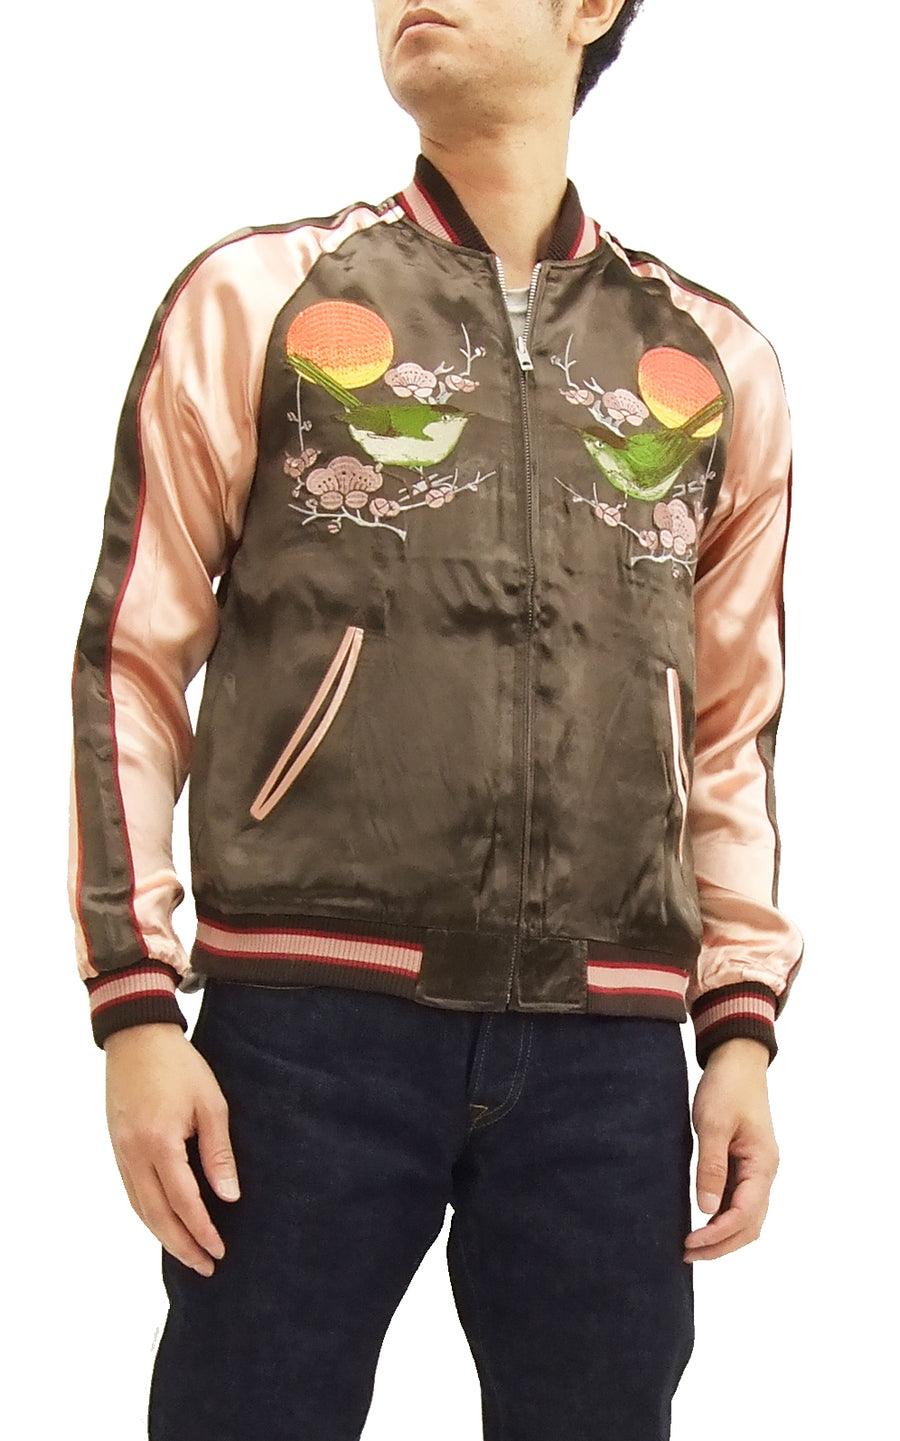 Japanesque Script Japanese Souvenir Jacket 3RSJ-030 Ume and Bird Men's Sukajan Charcoal-Gray/Pink